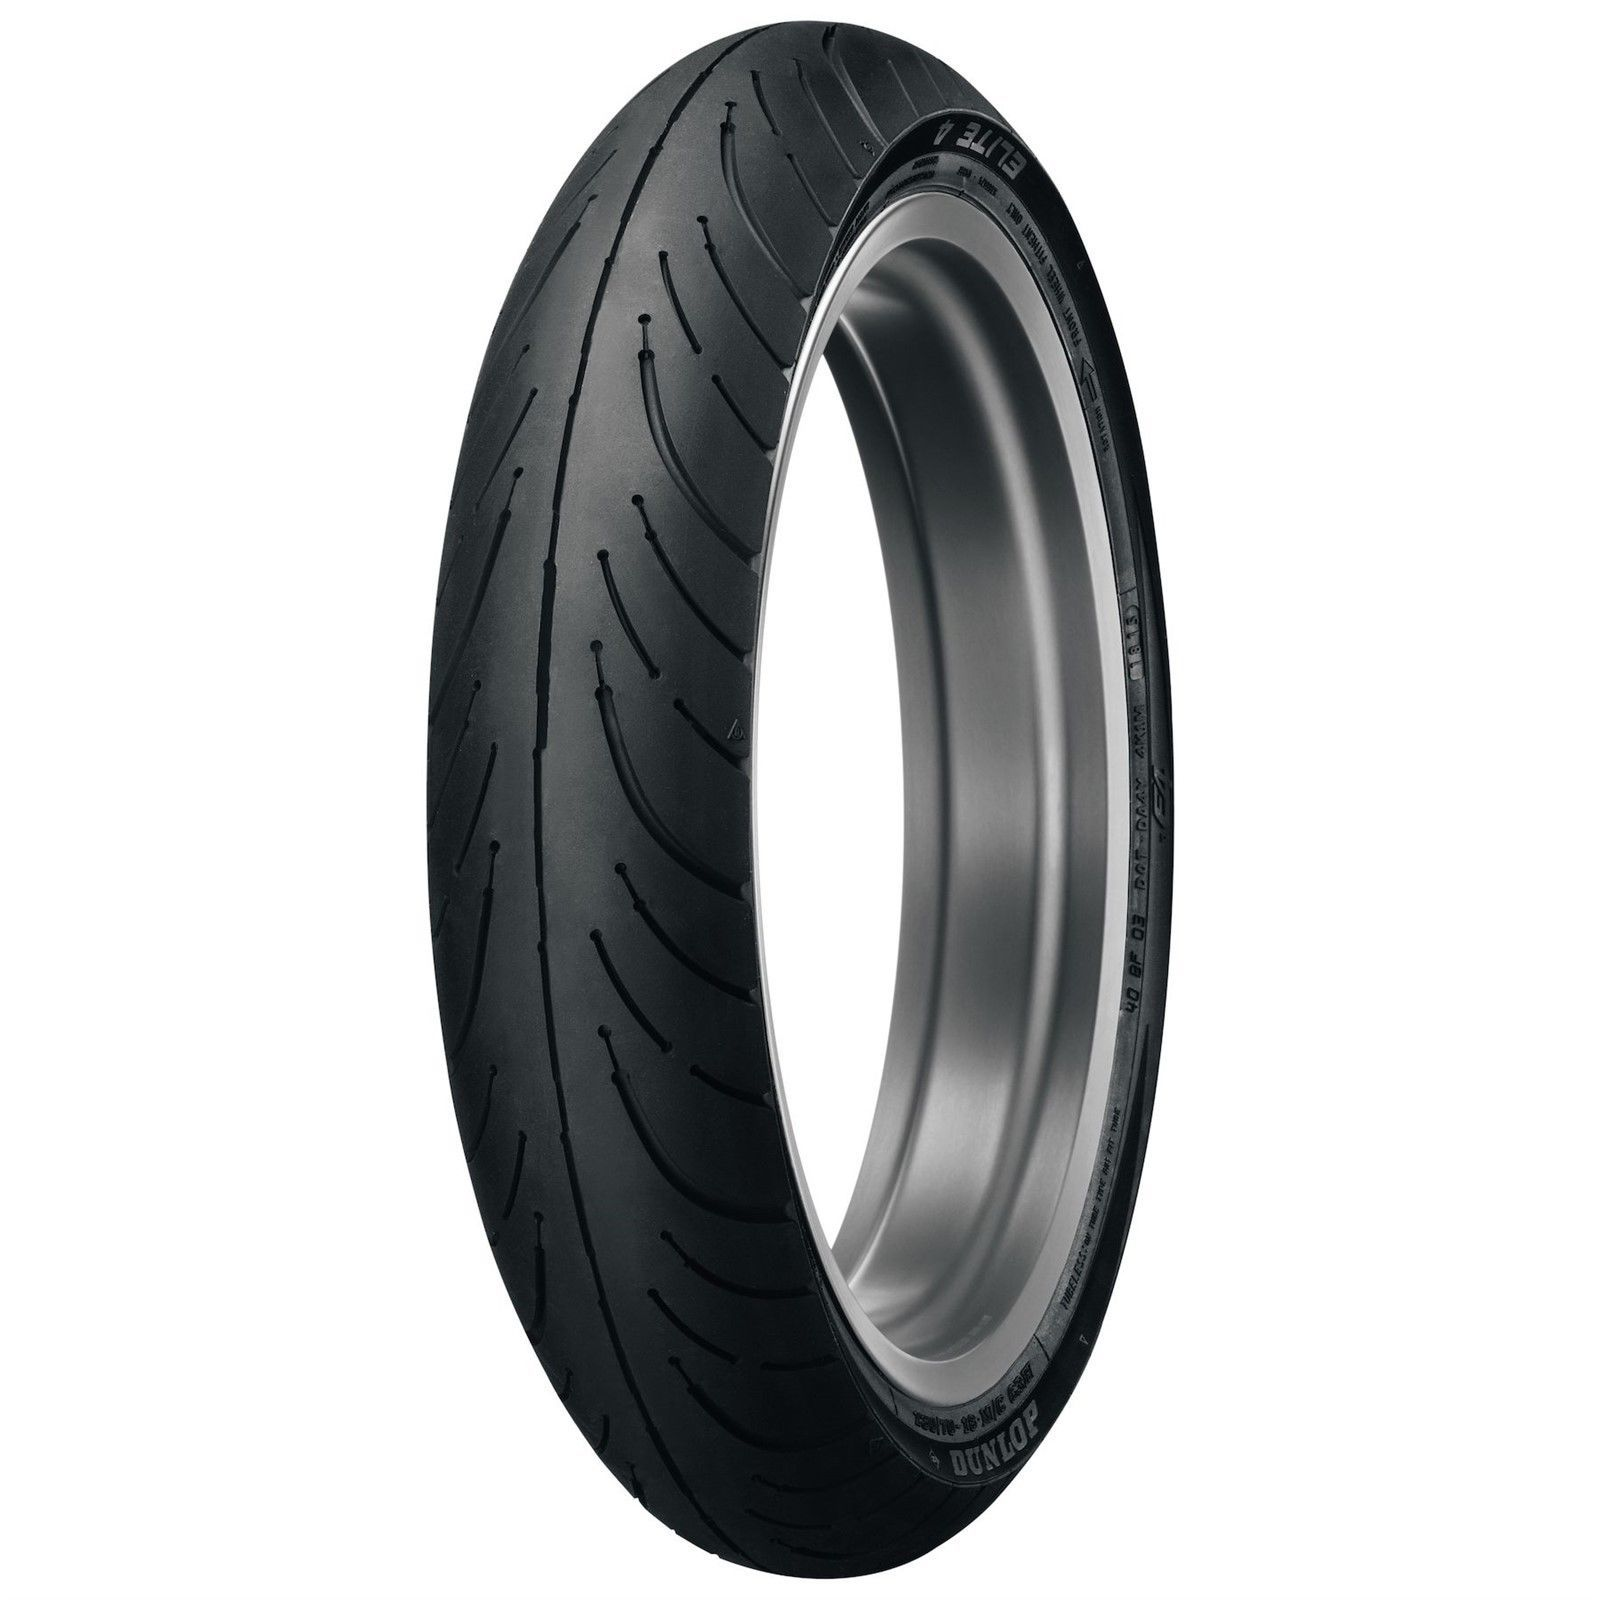 New Dunlop Elite 4 80-90-21 Bias Front Motorcycle Tire 48H High Mileage